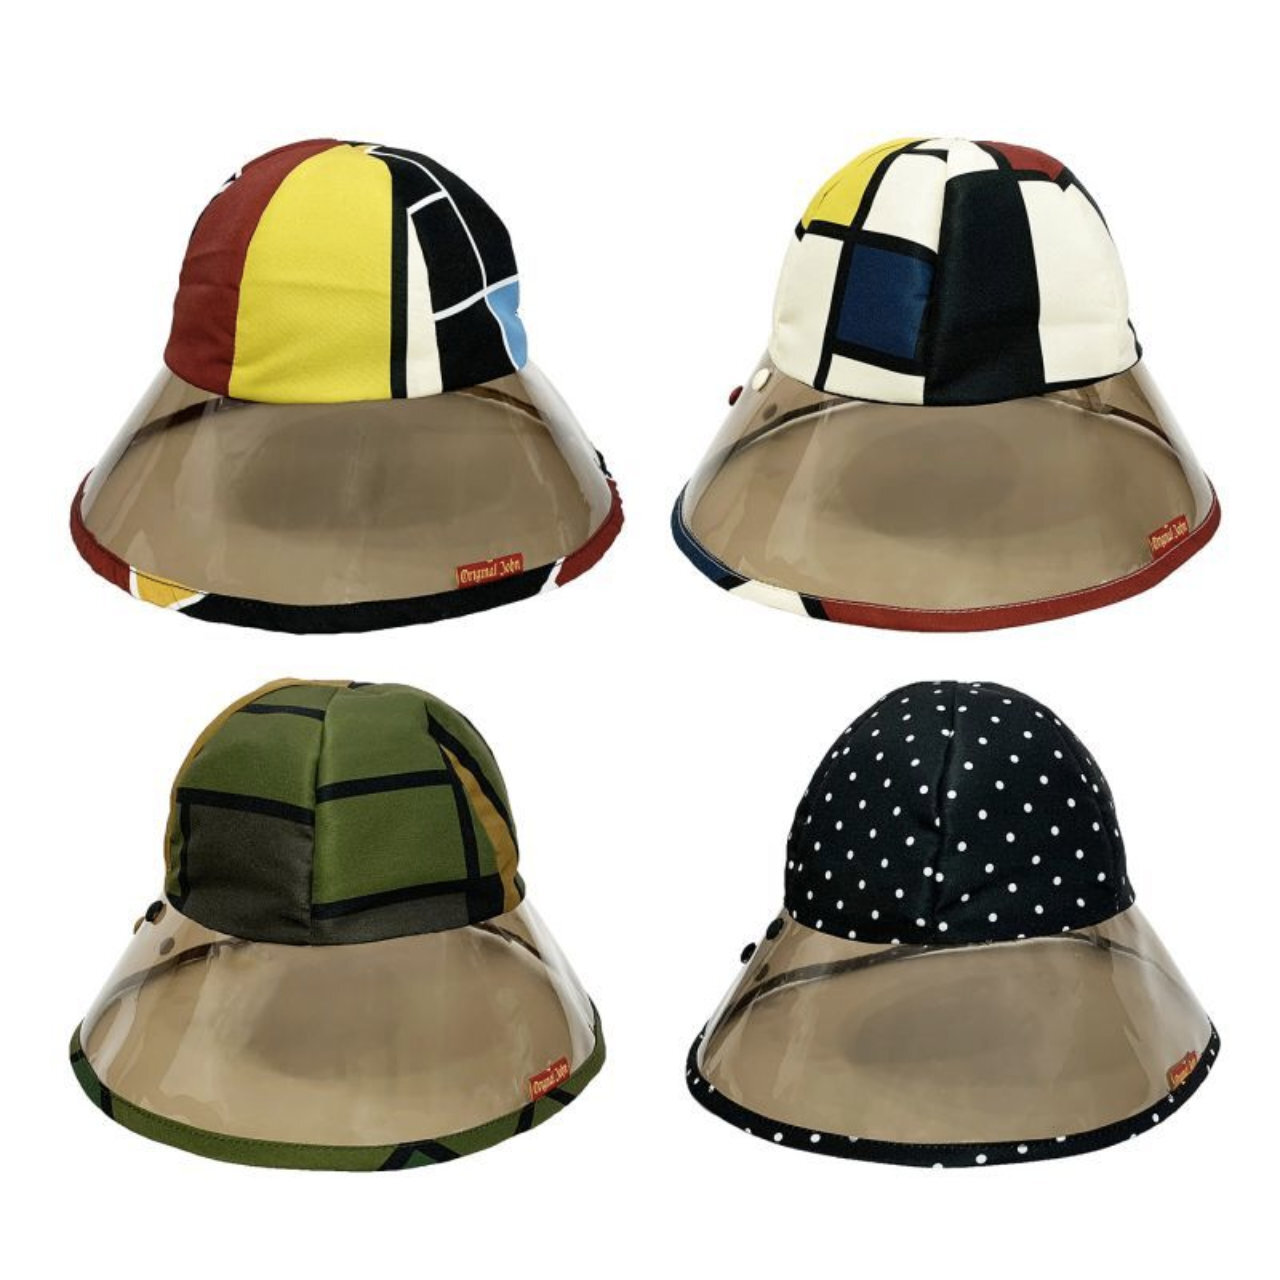 【Original John】 RETRO RAIN HAT